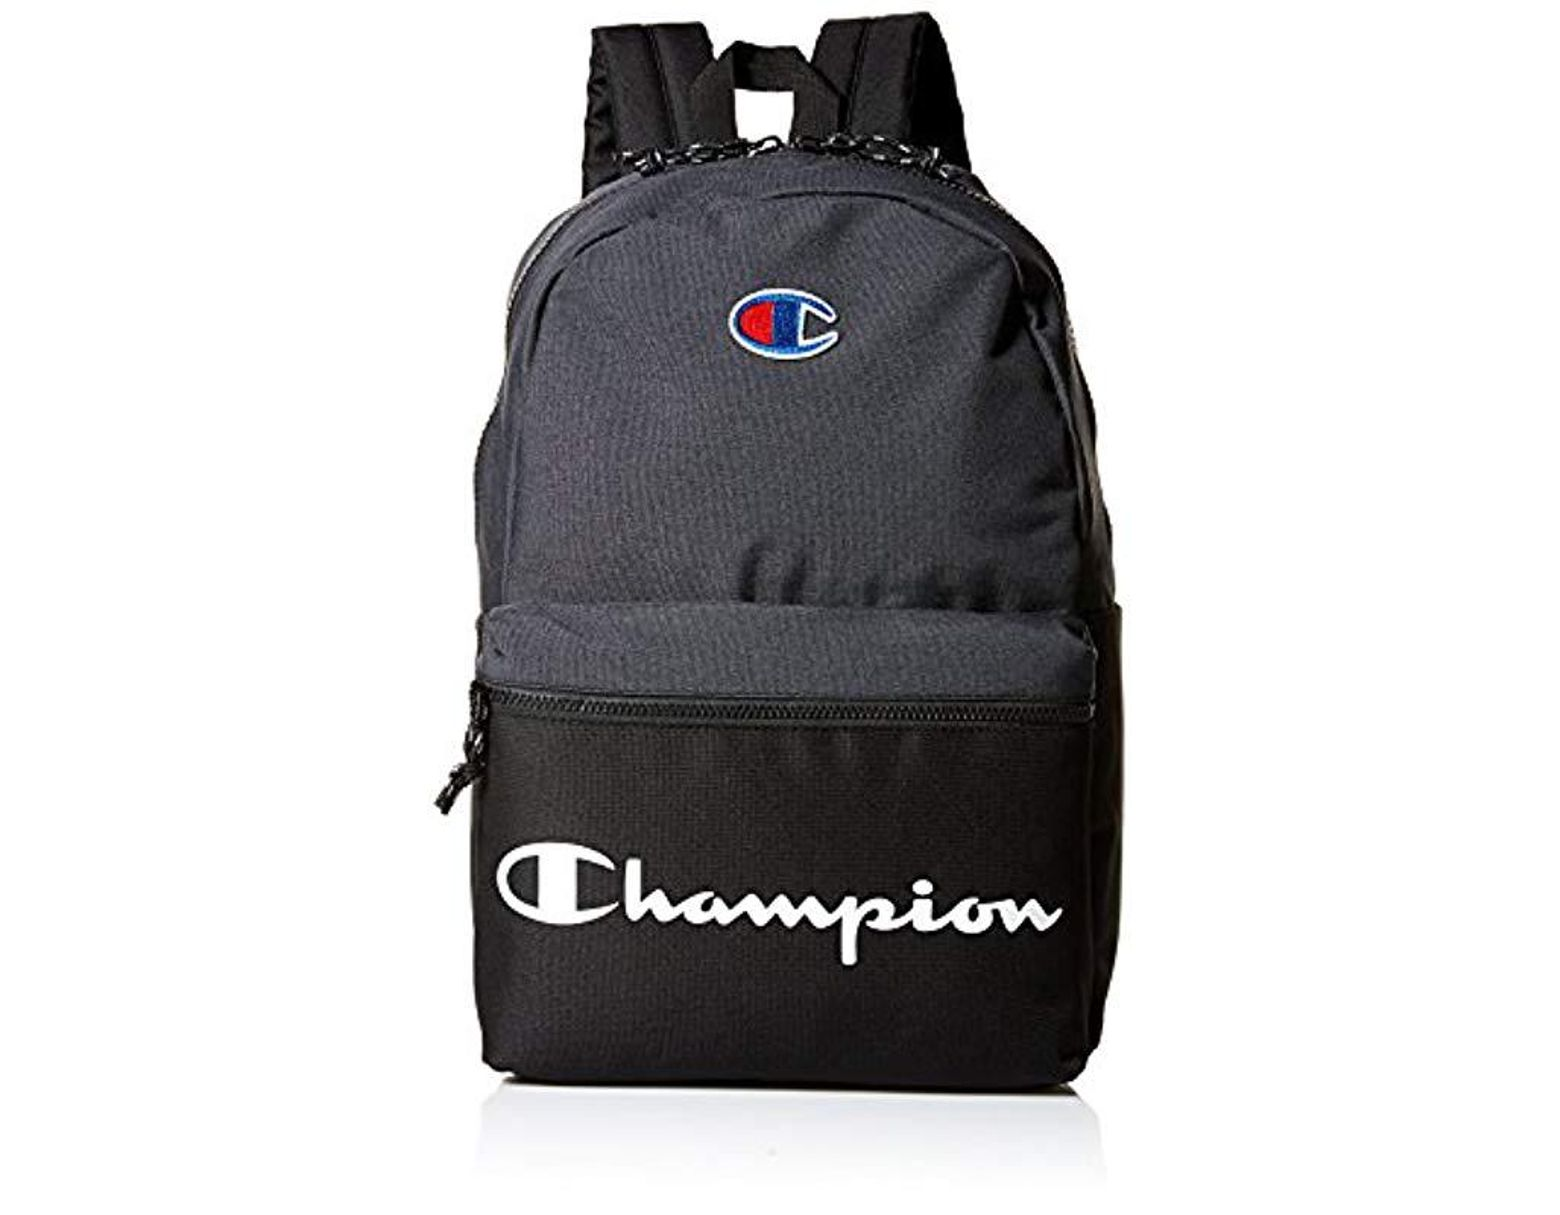 71559bc4bb37a7 Lyst - Champion Manuscript Backpack in Black for Men